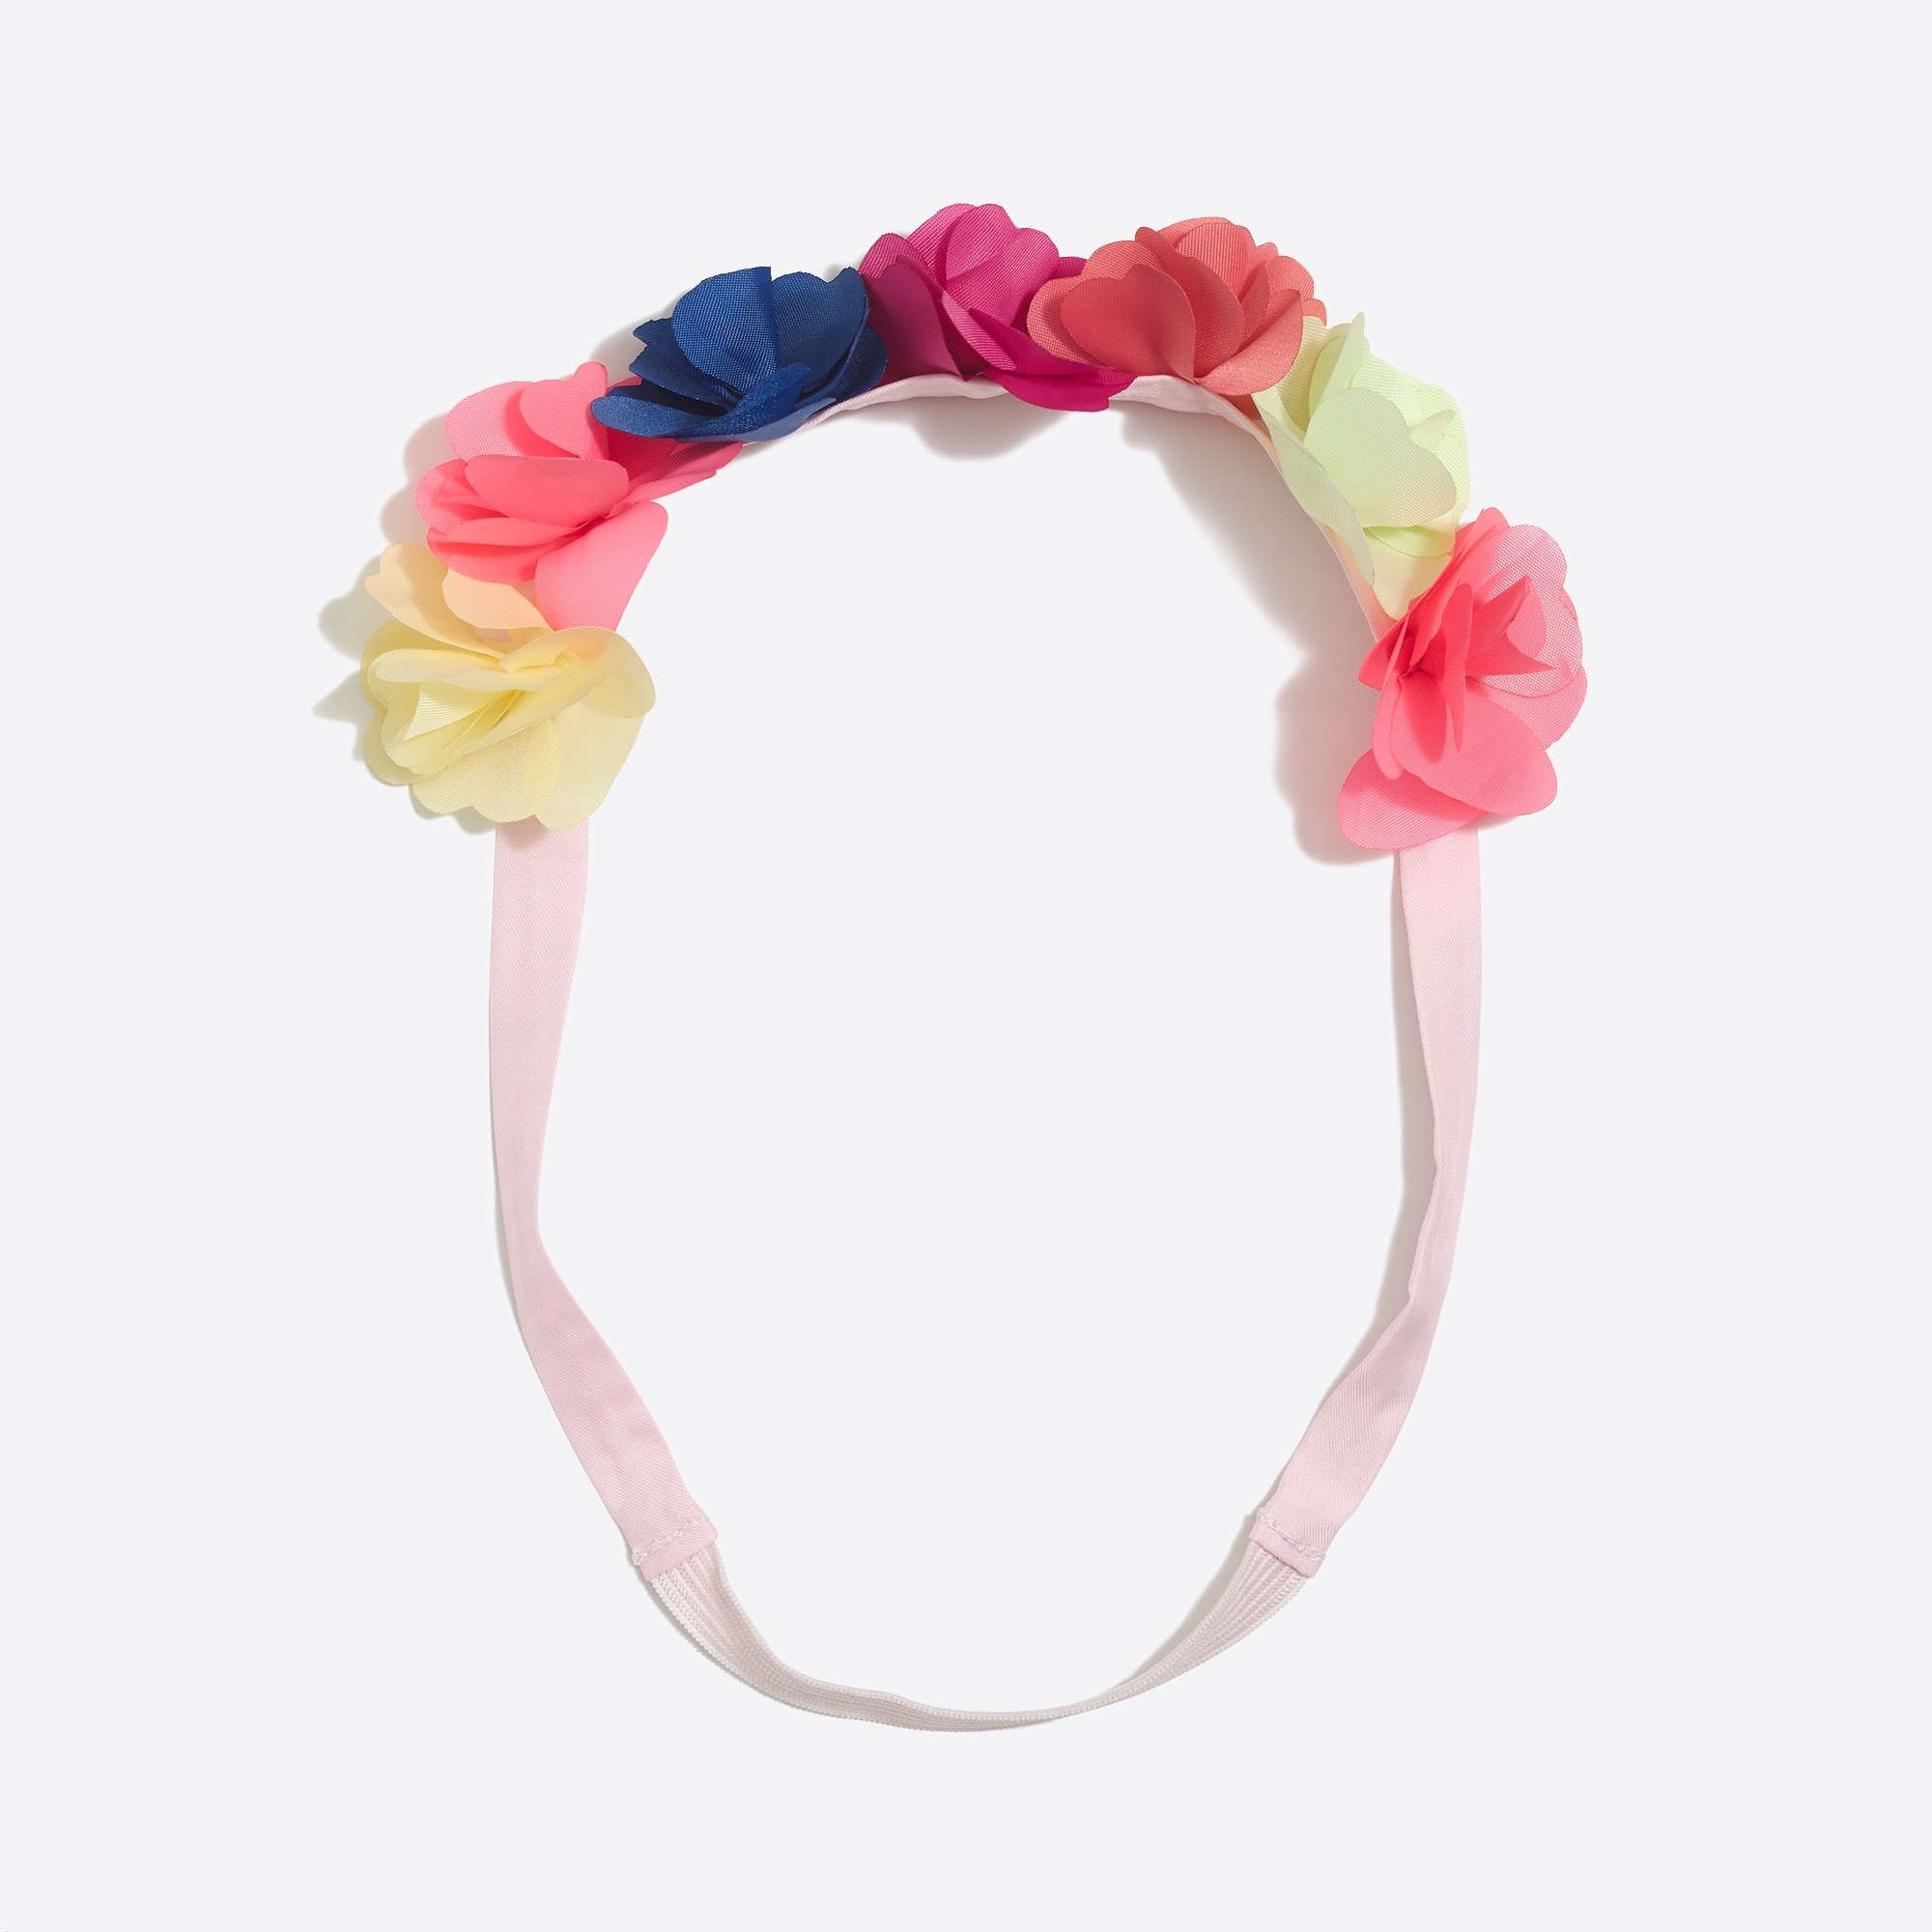 Girls' flower crown factorygirls jewelry & accessories c